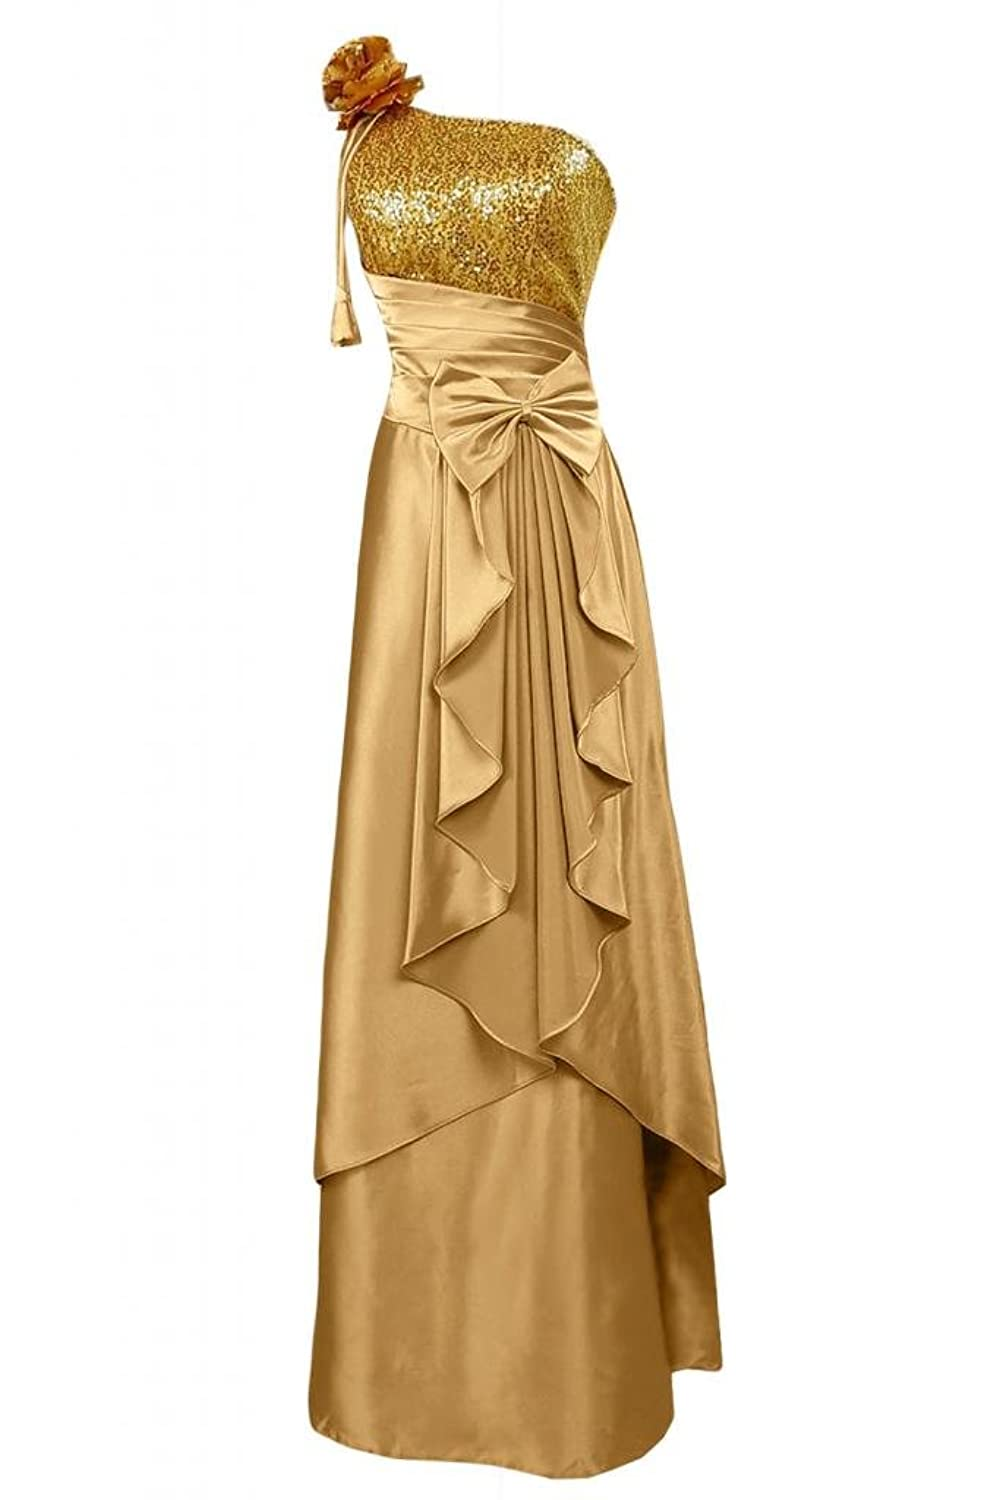 Sunvary Glamorous Satin One-Shoulder Long Evening Dress Pageant Dress